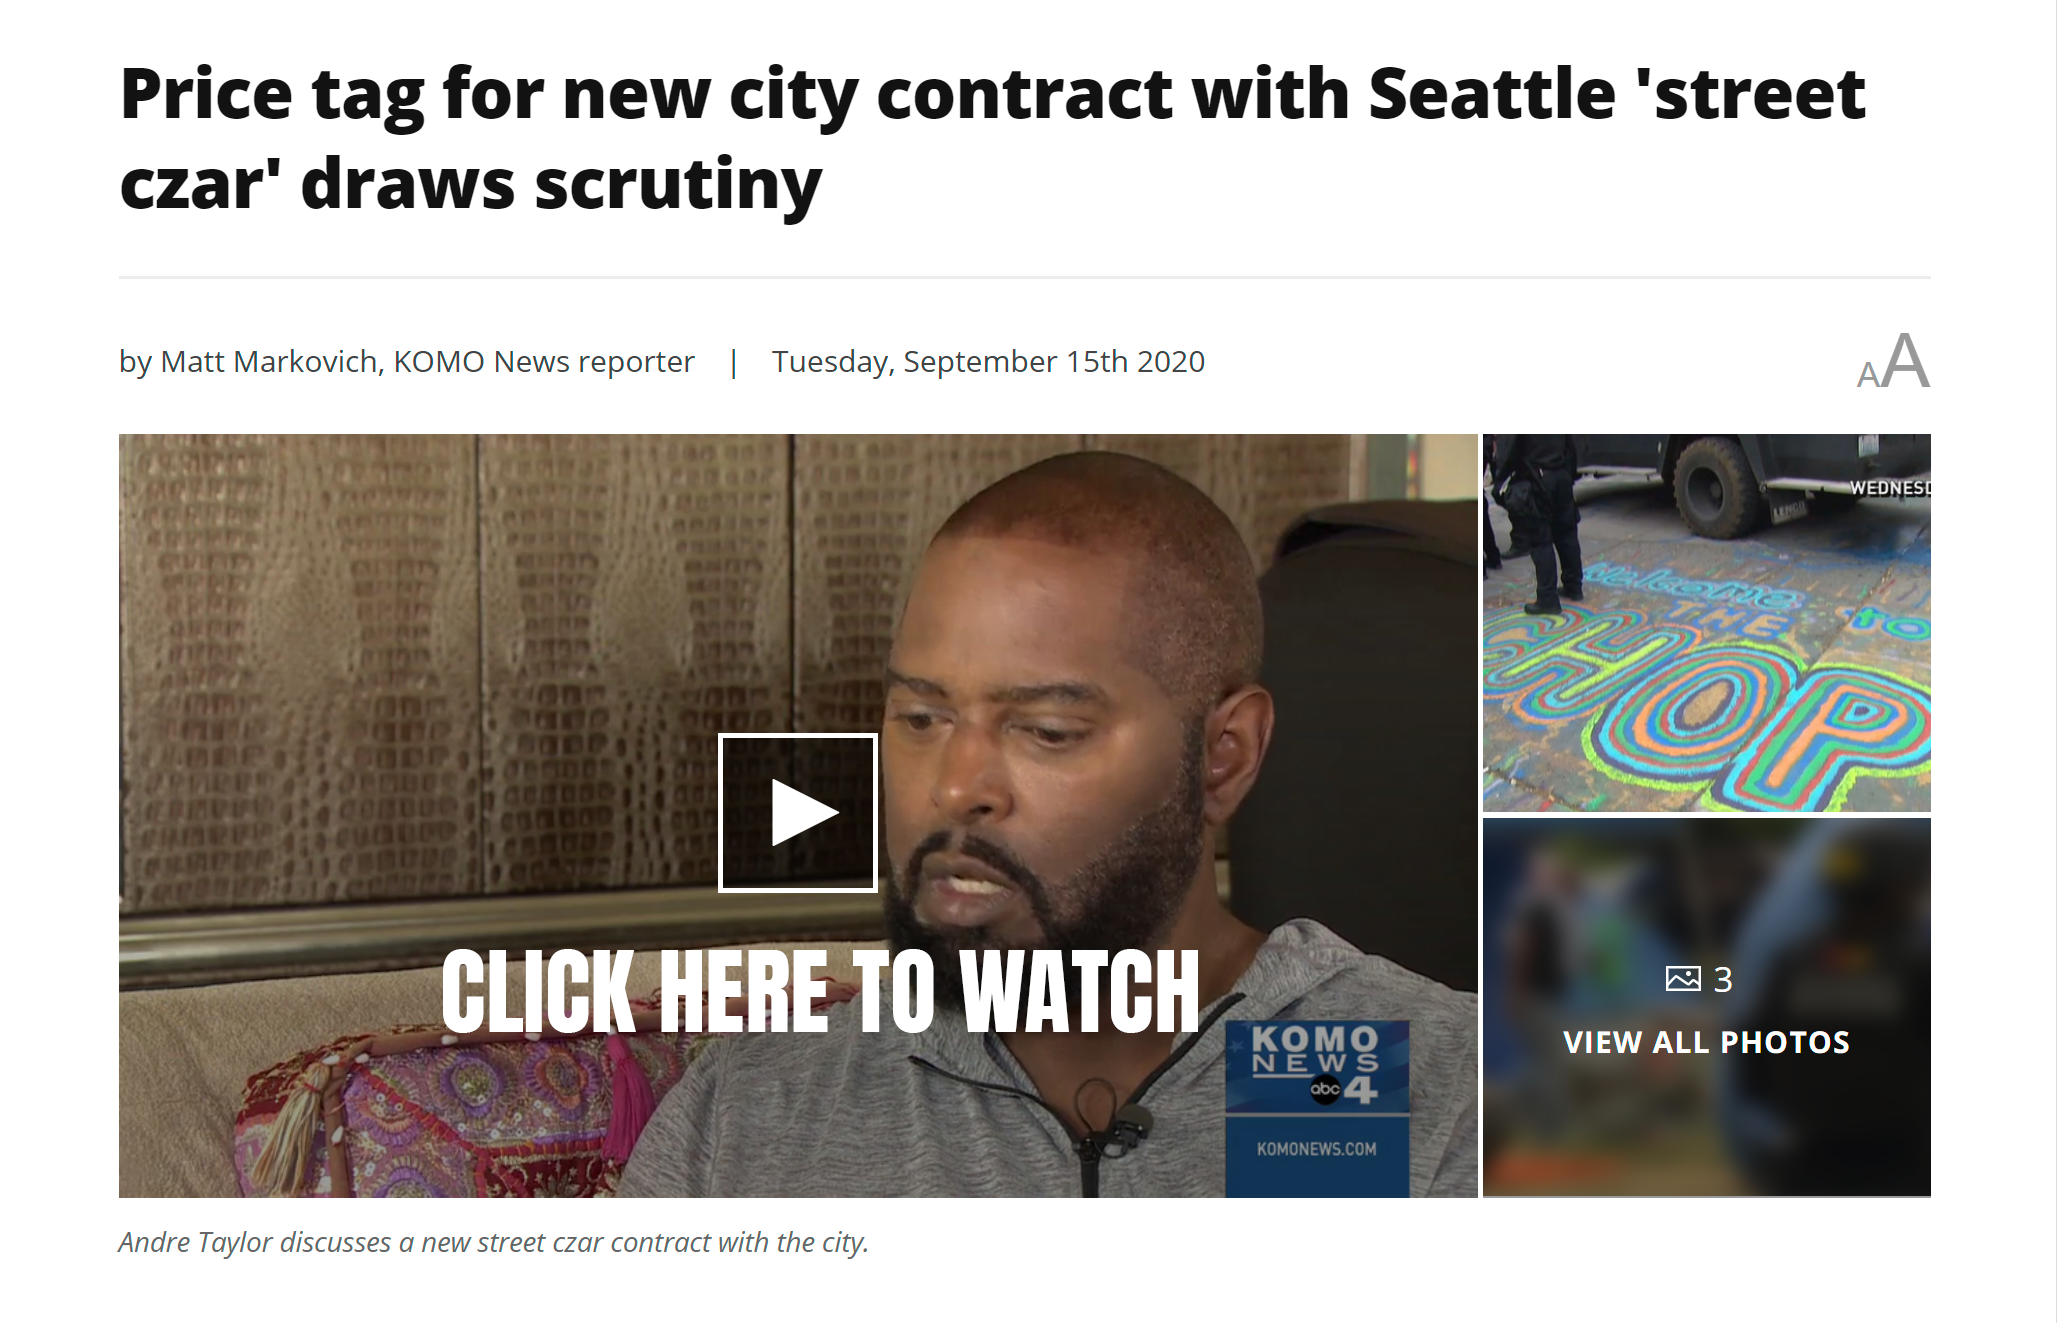 Komo News Click Here to Watch